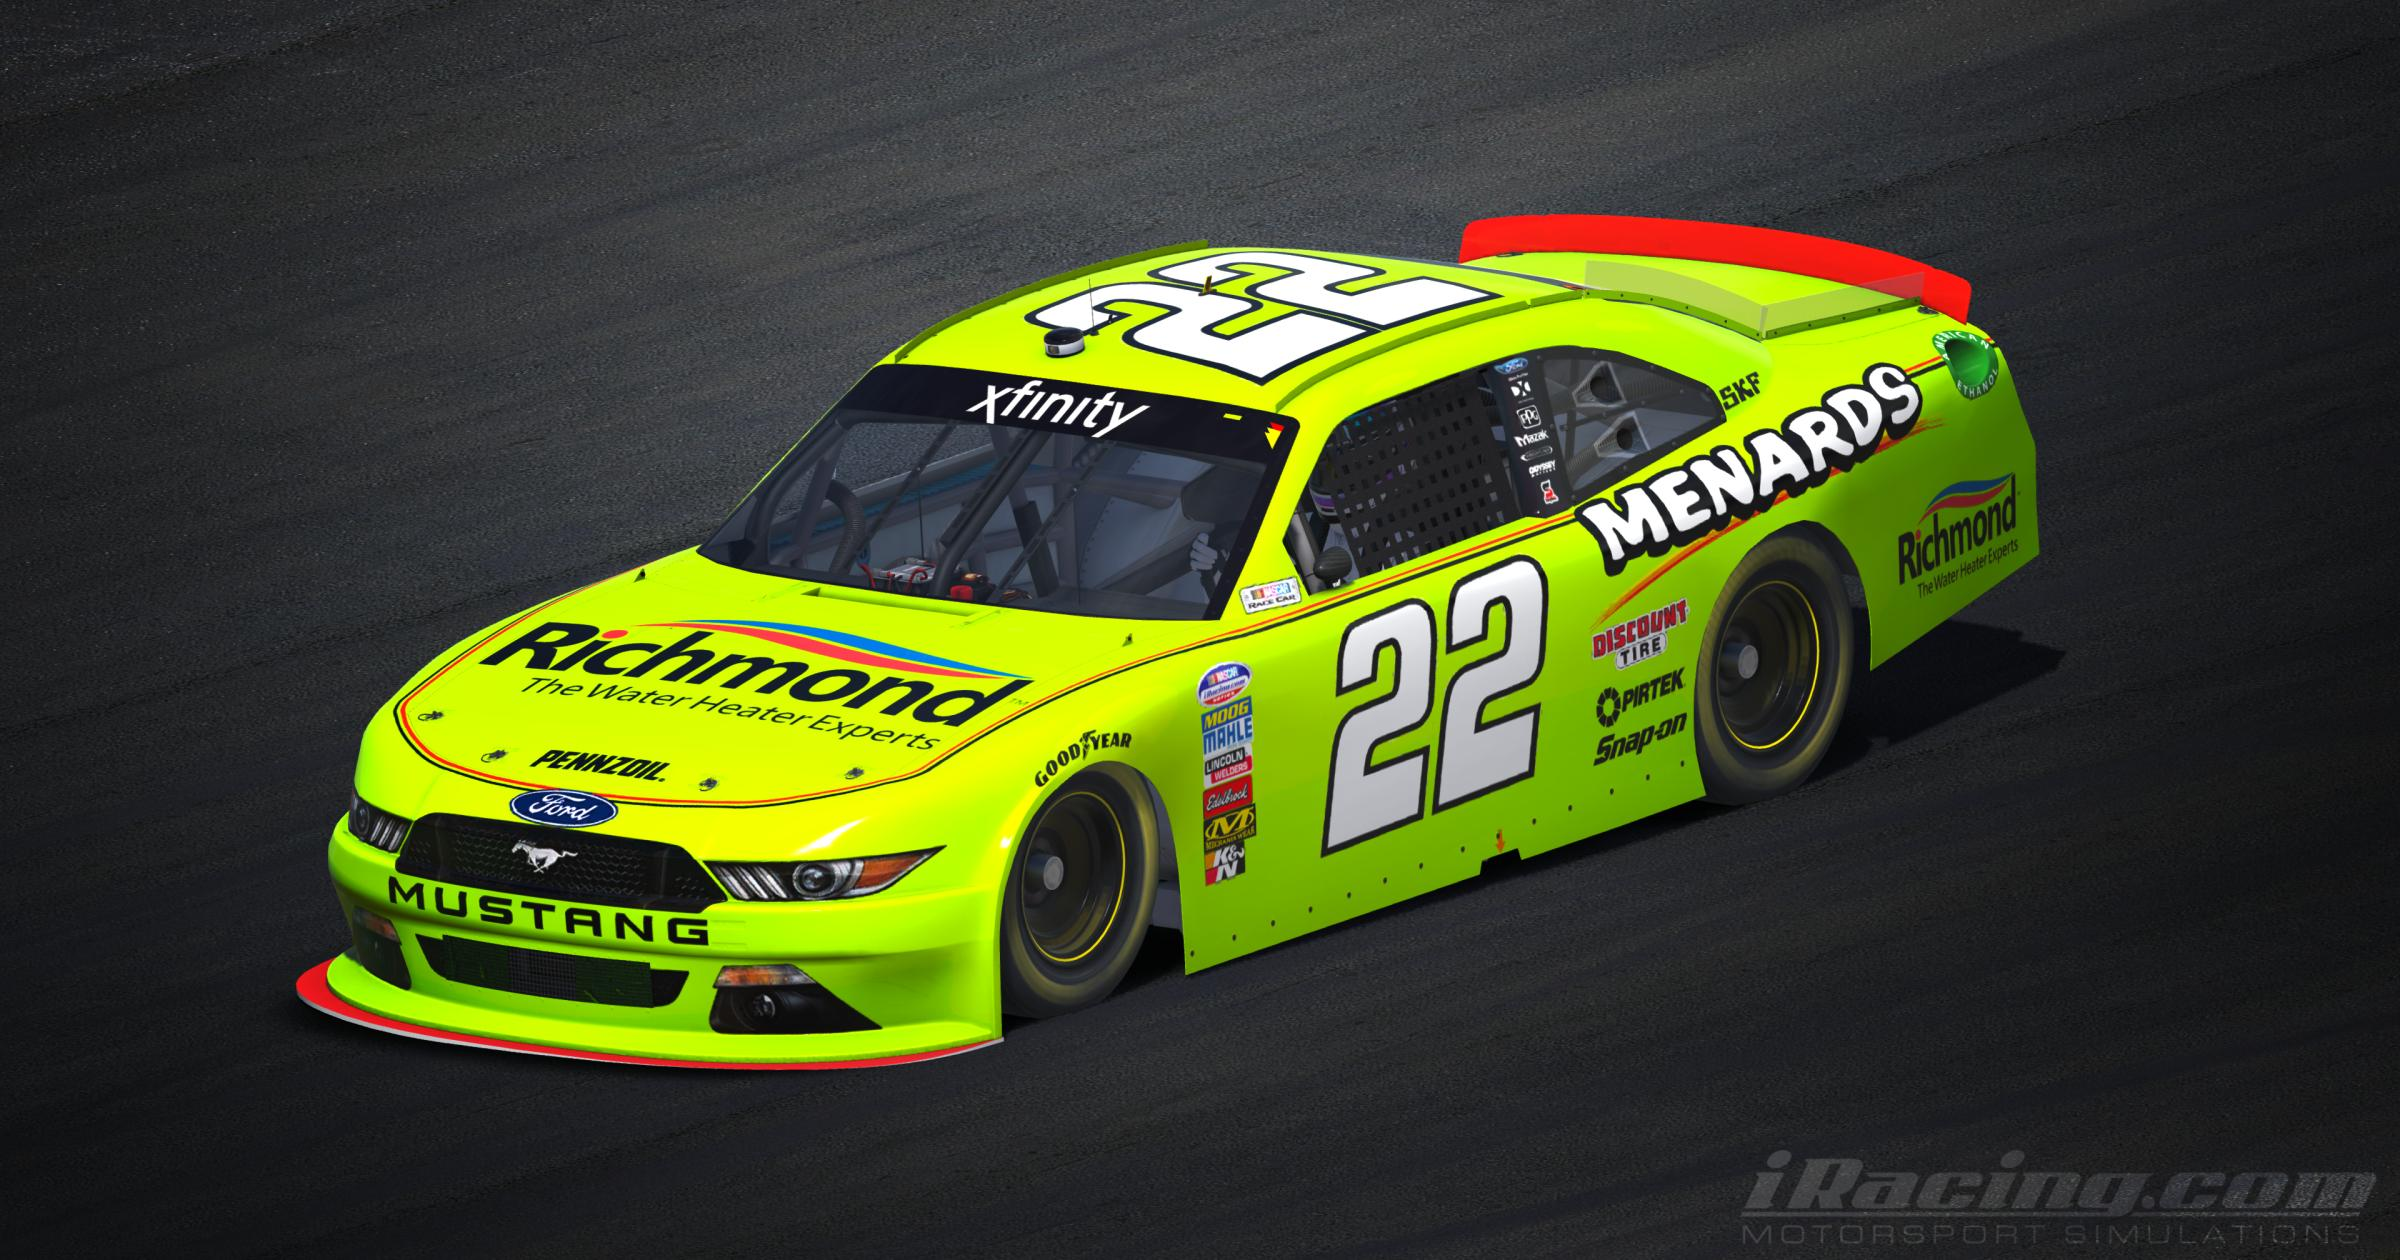 Preview of Team Penske 2018 Richmond Menards by Tyler King